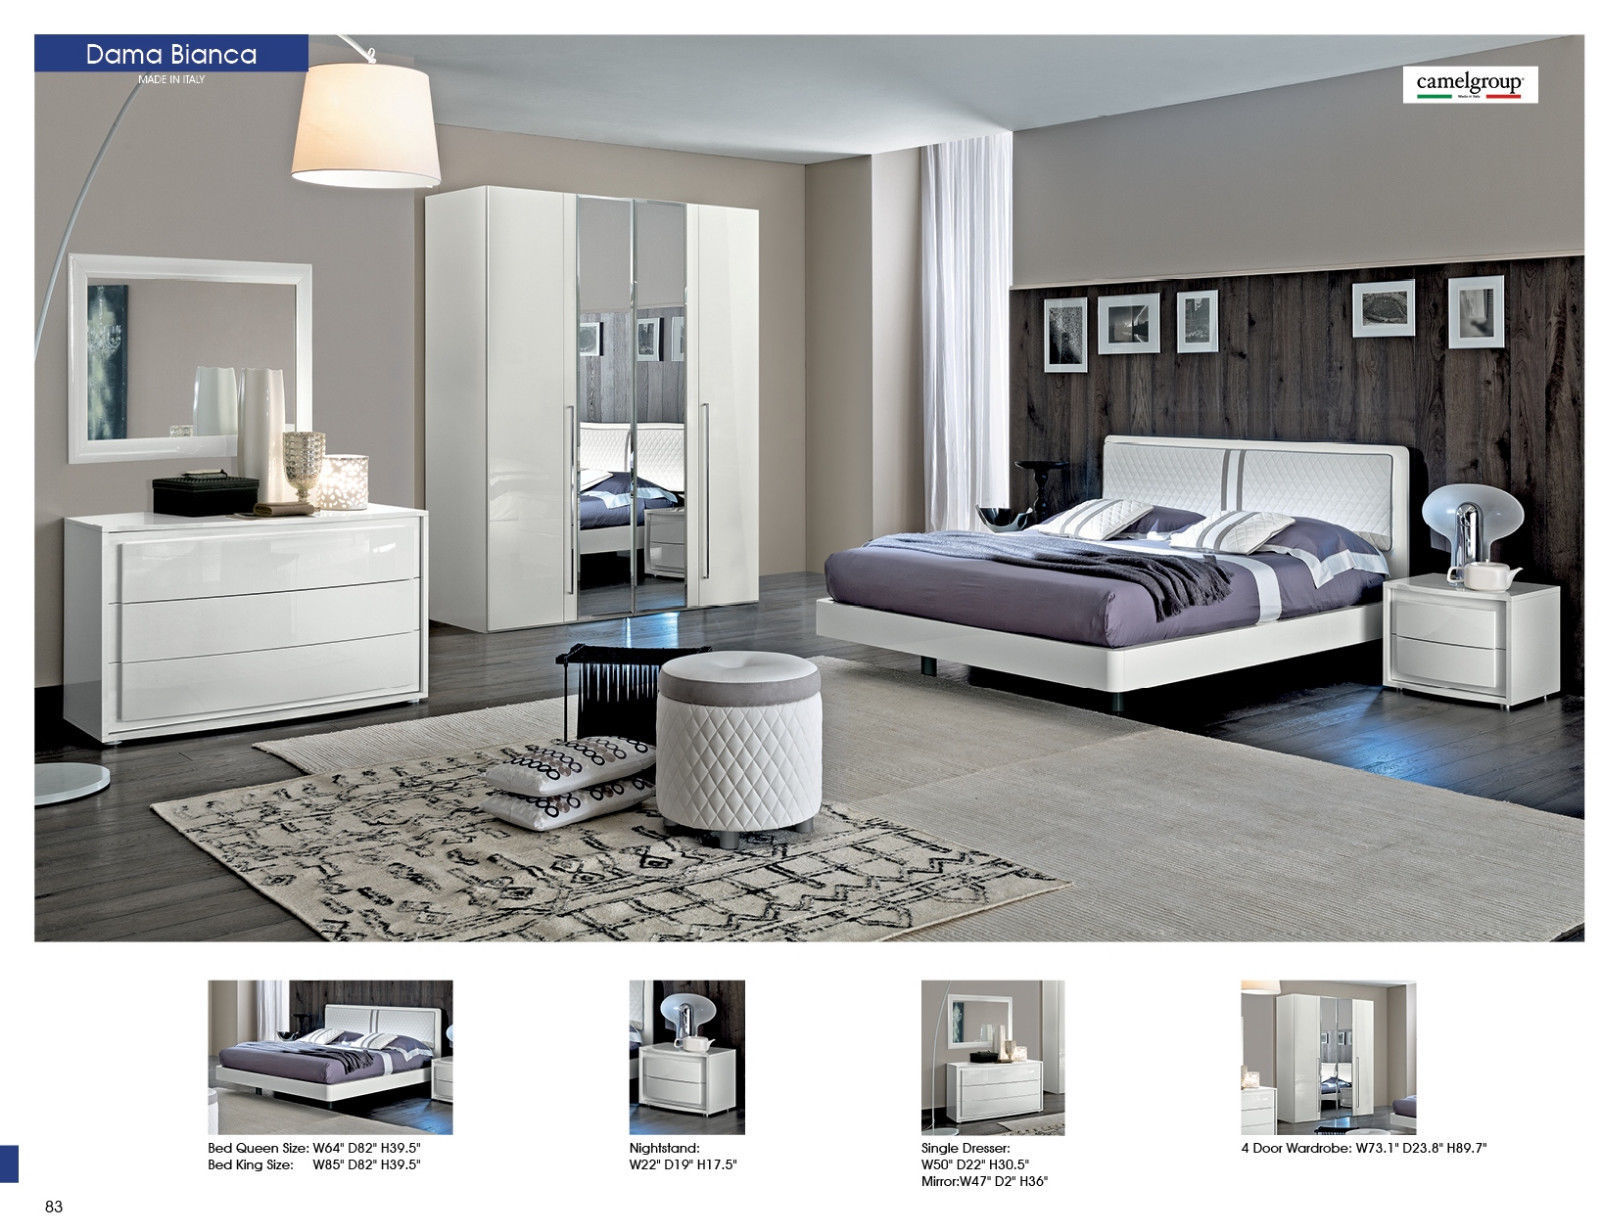 ESF Dama Bianca Queen Size Bedroom Set Chic Contemporary Modern 2 Night Stands